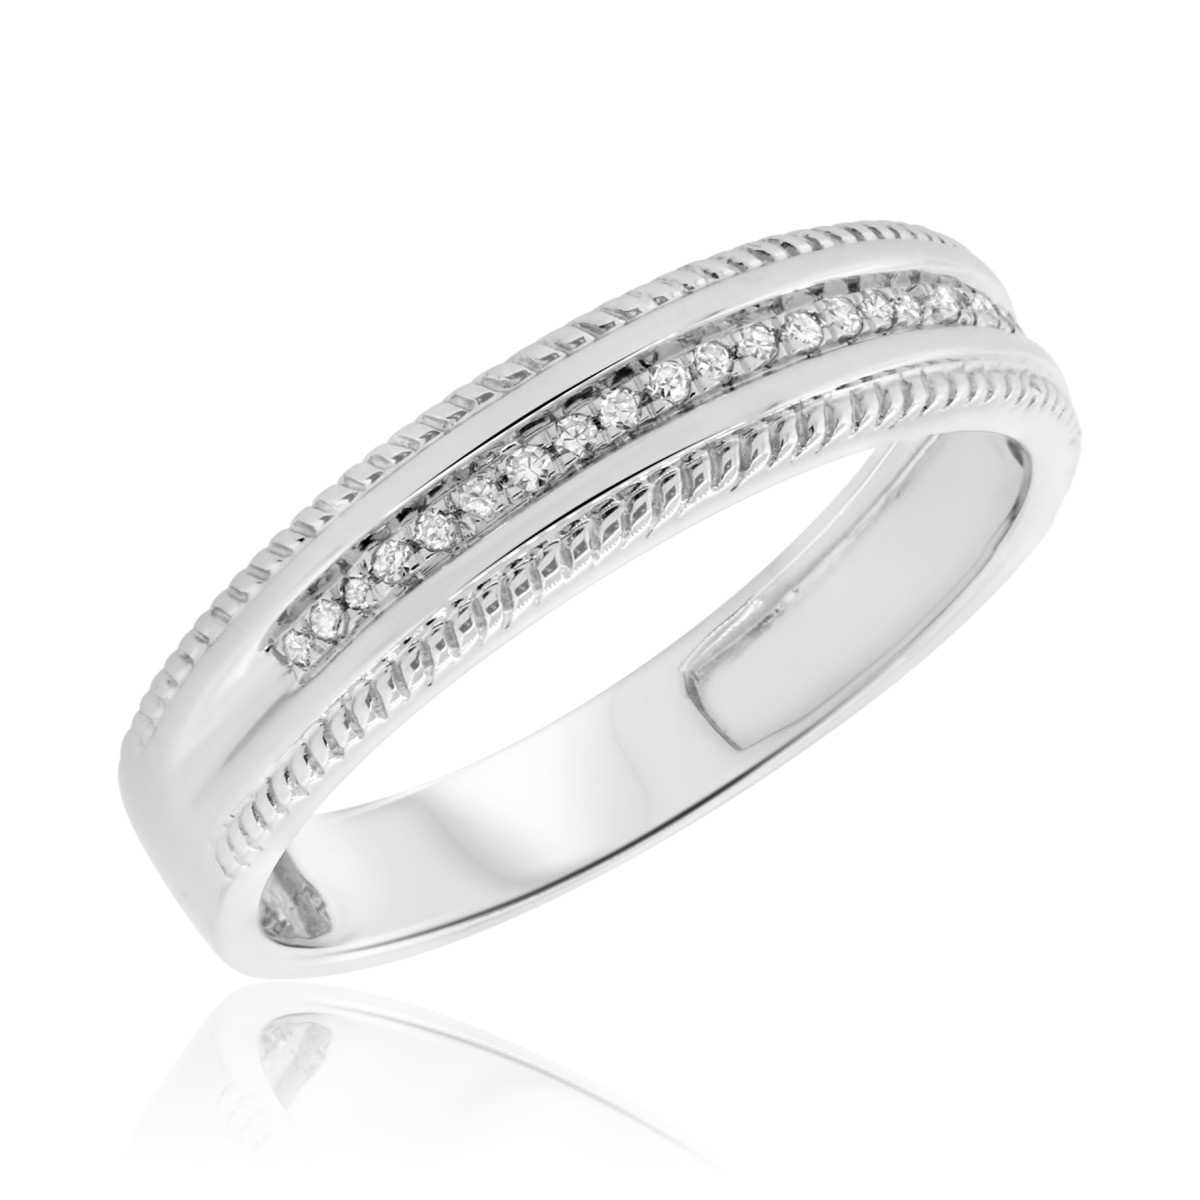 1/15 CT. T.W. Diamond Ladies Wedding Band  10K White Gold